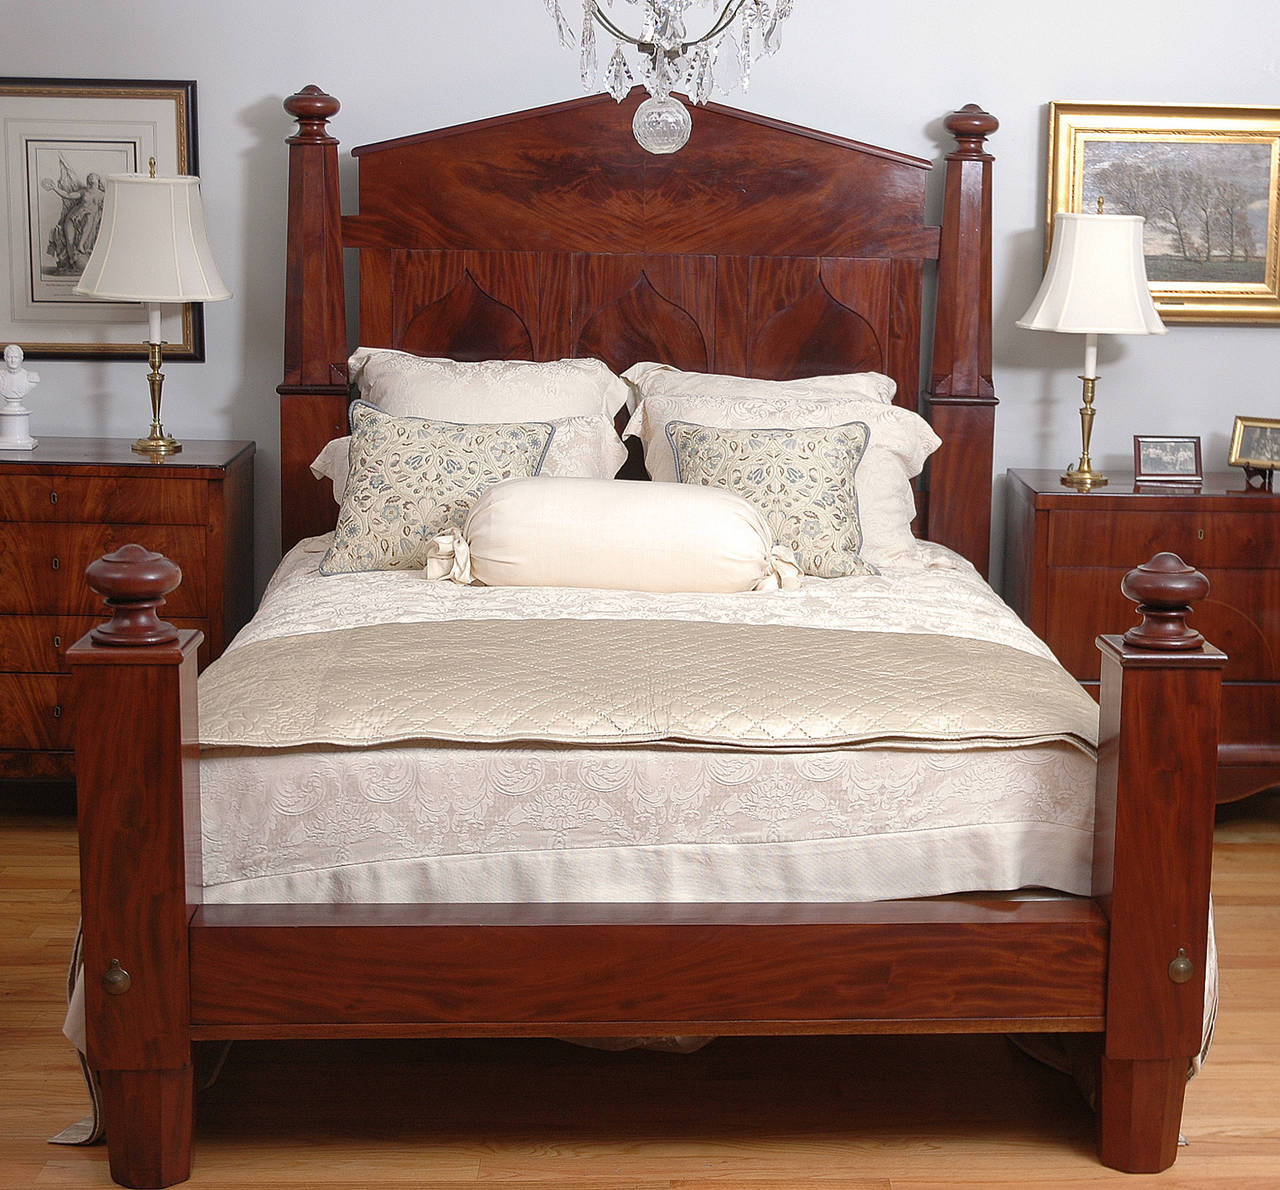 American Empire Bed In Mahogany Adapted To Queen Size C 1840 At 1stdibs